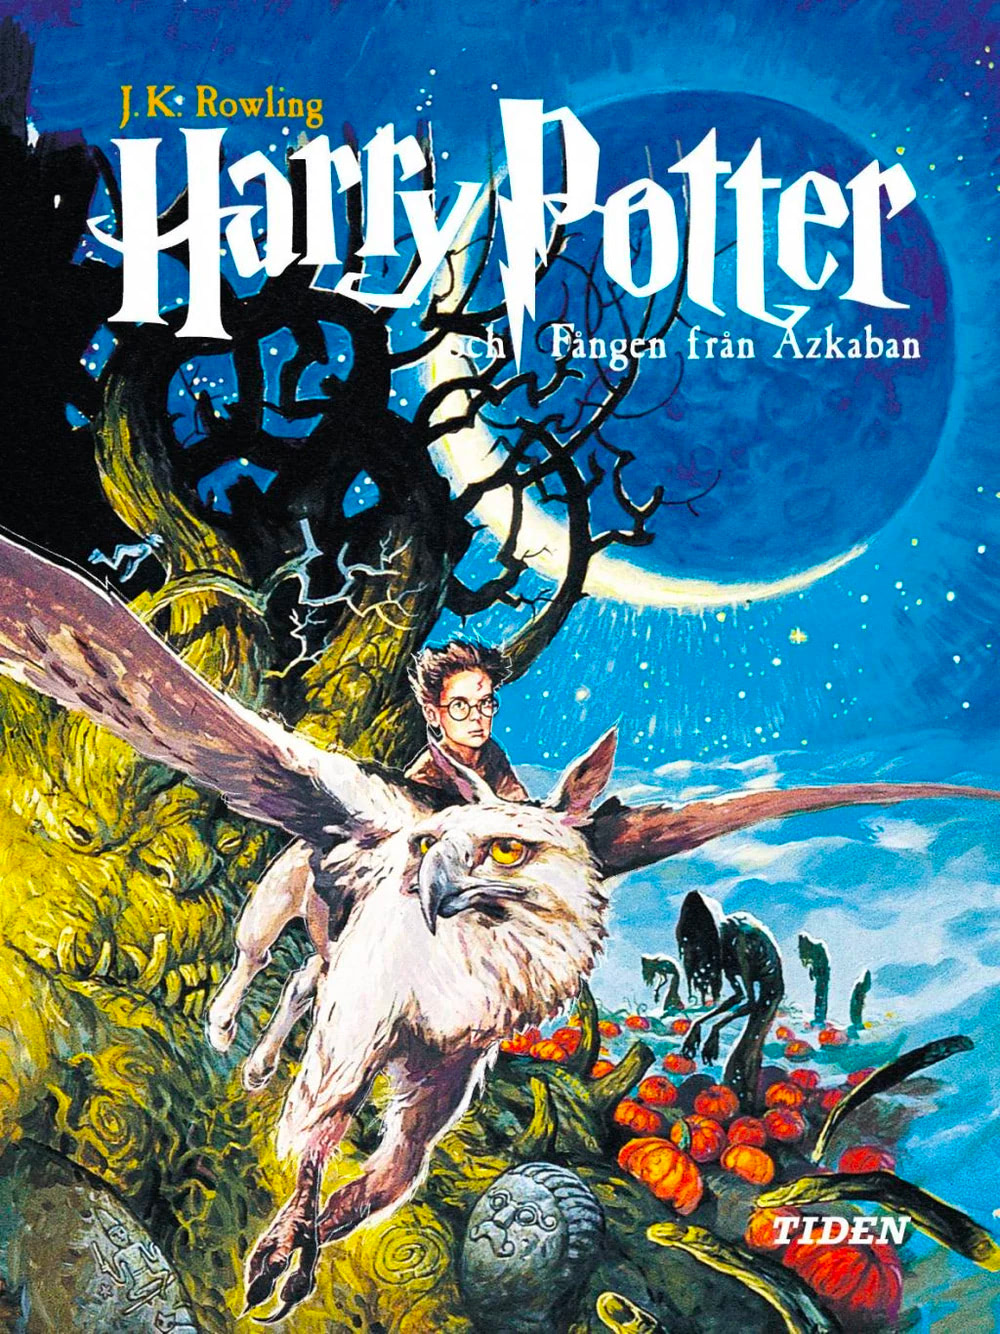 'Prisoner of Azkaban' Swedish edition